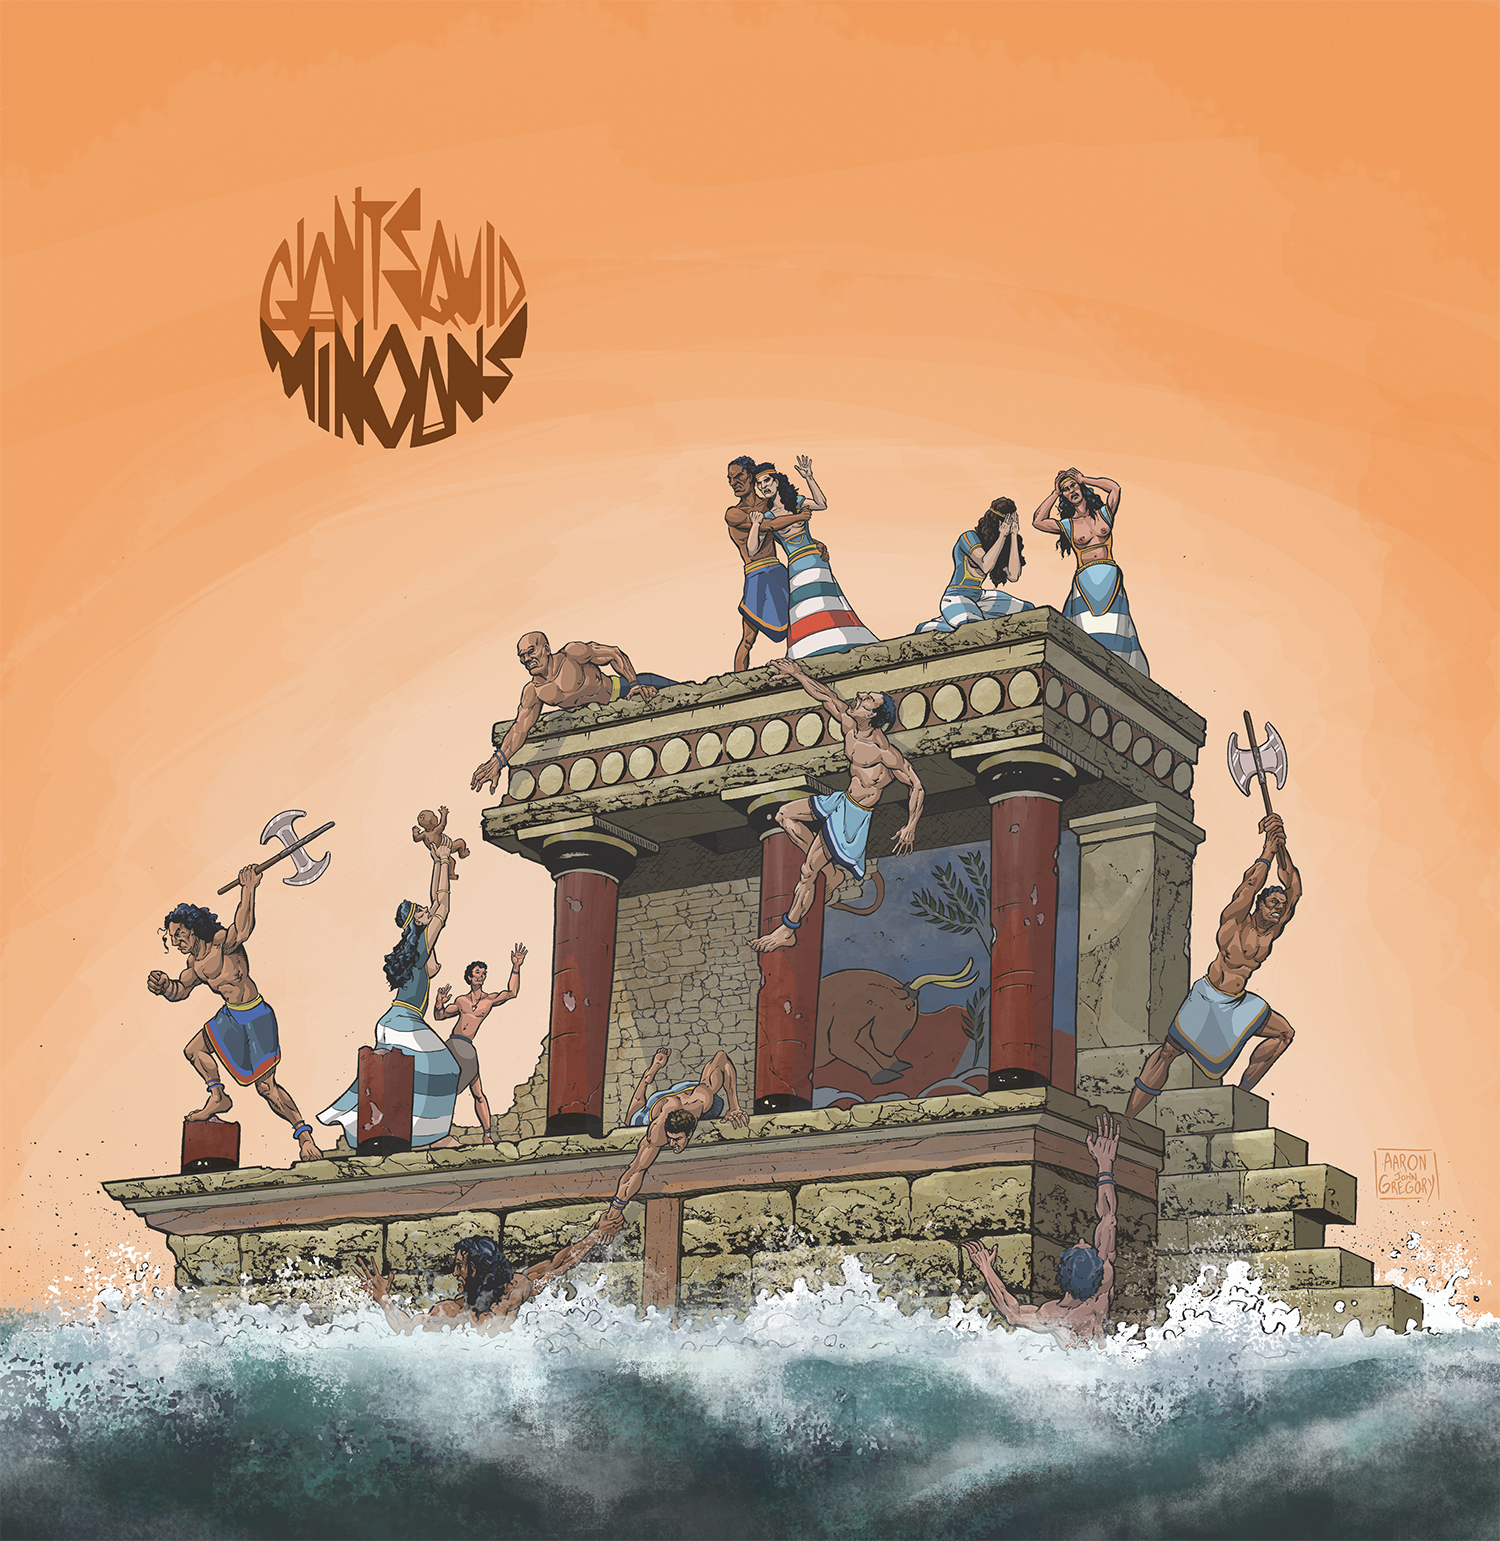 Giant Squid – Minoans Review